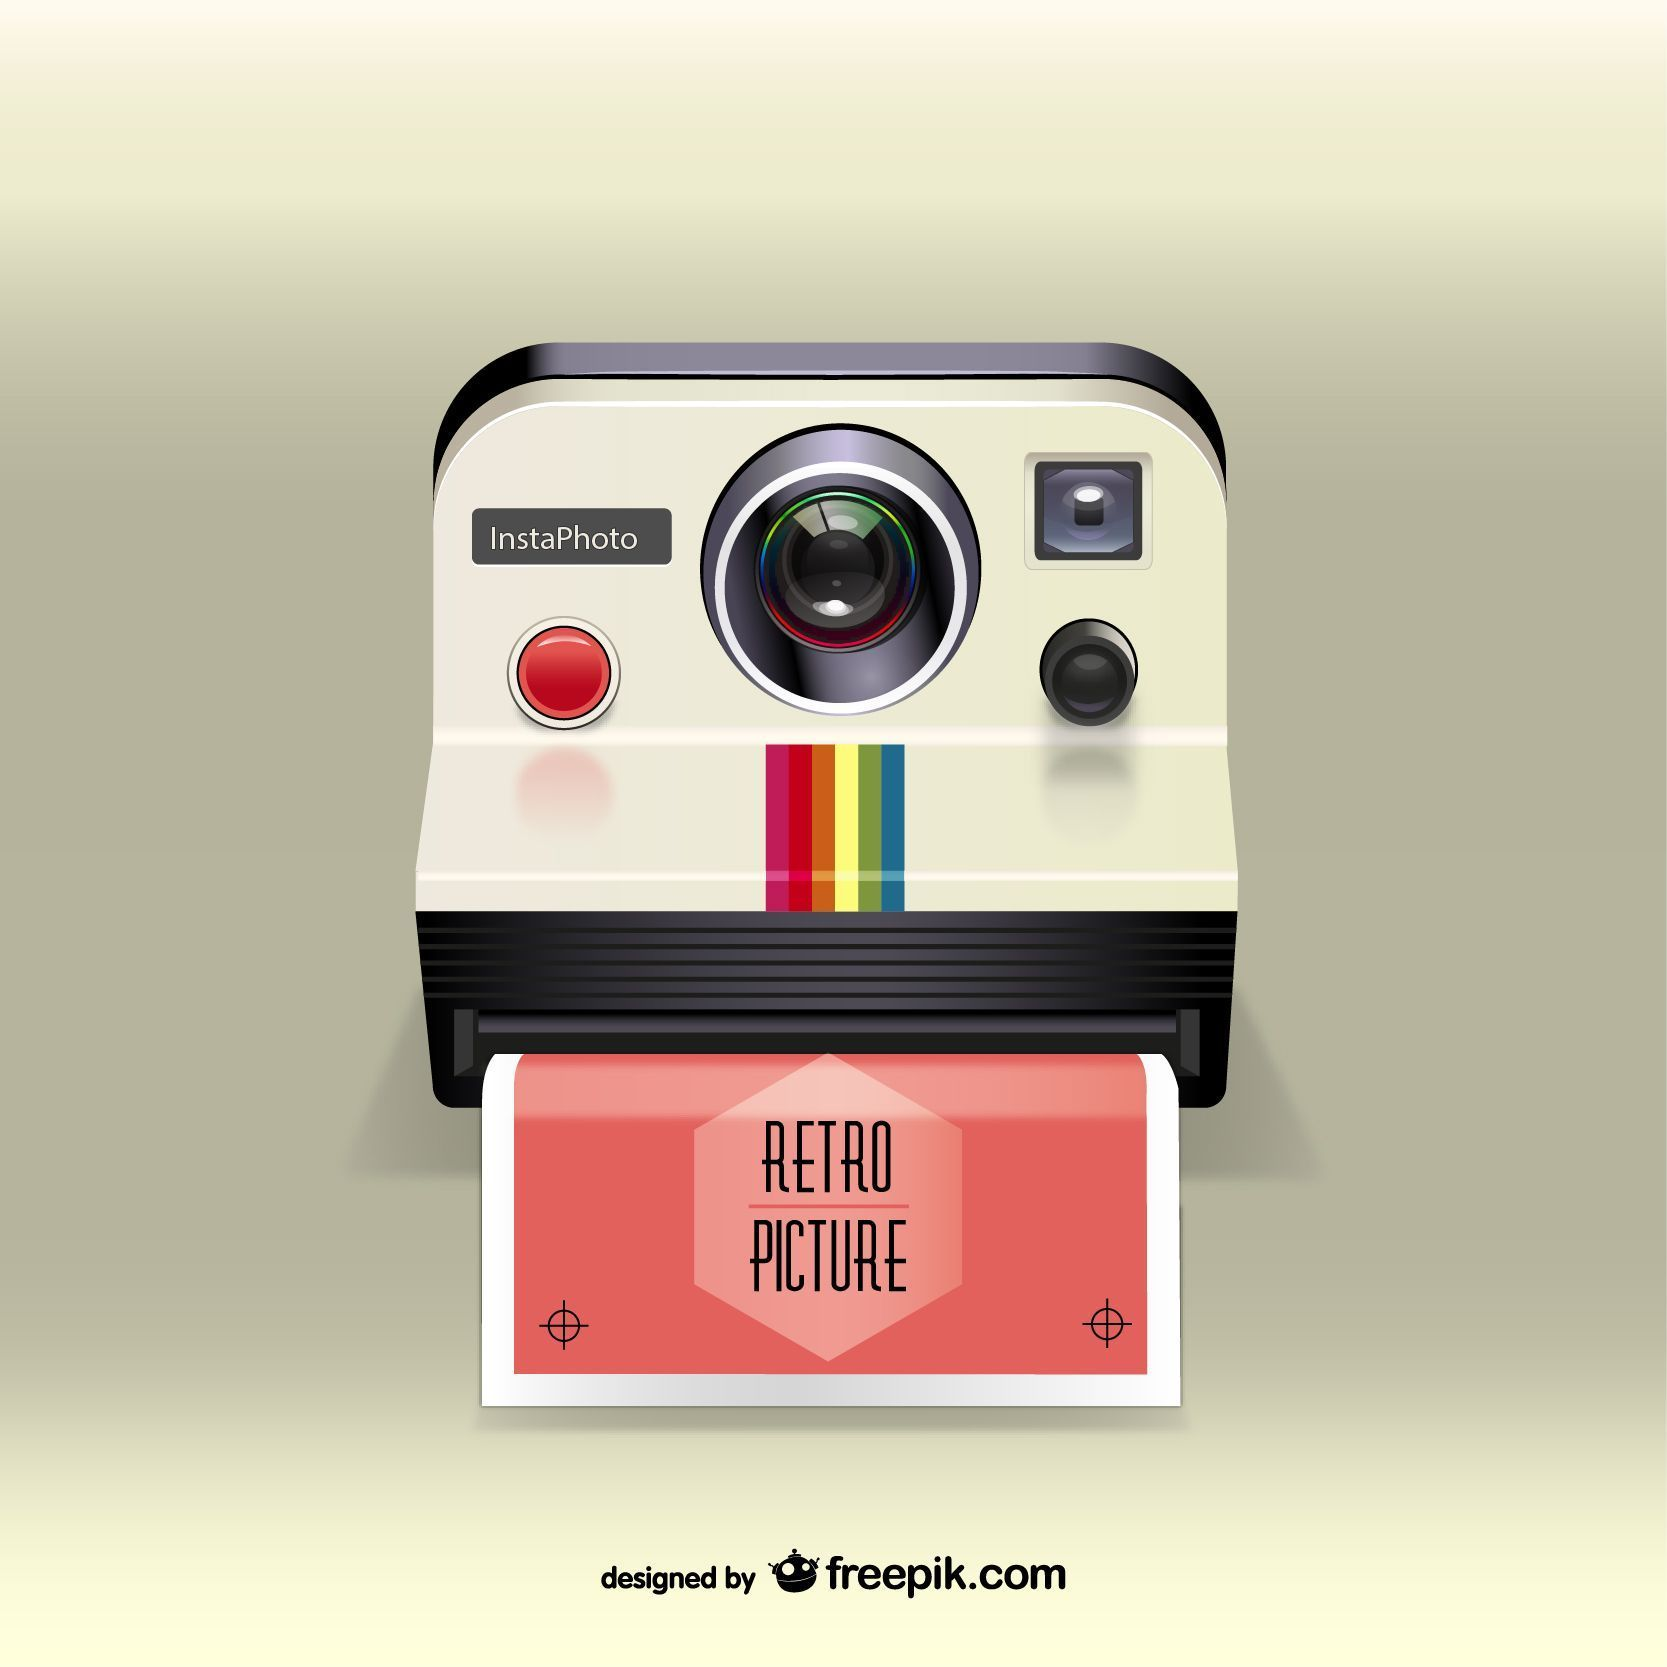 Instagram como estrategia de marketing digital exitosa